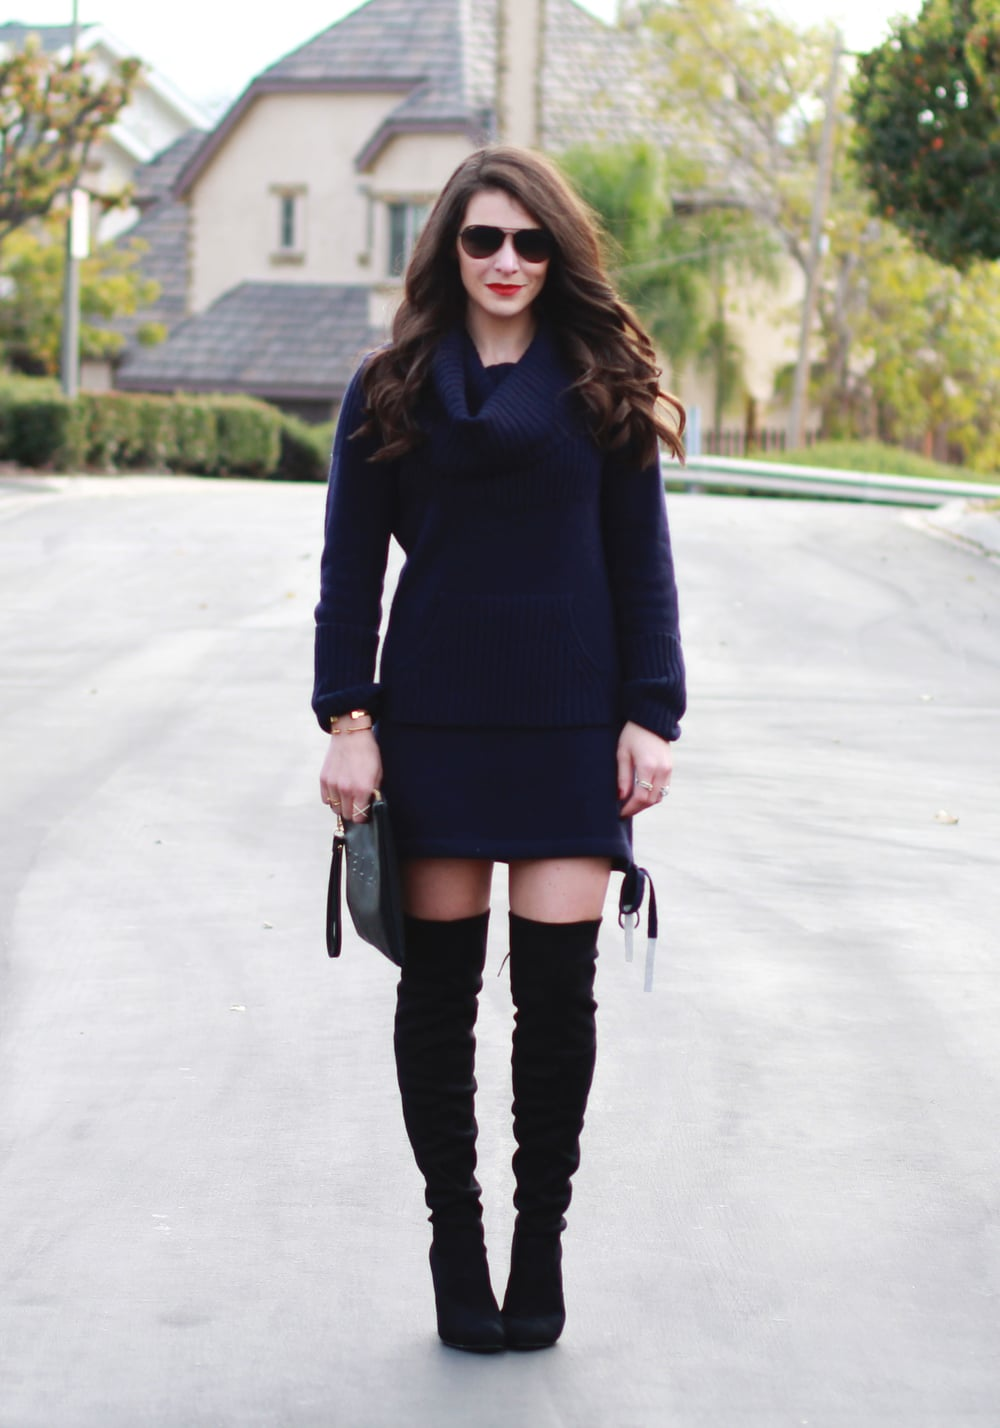 863e0f20214 WINTER STAPLE  THE SWEATER DRESS — Me and Mr. Jones